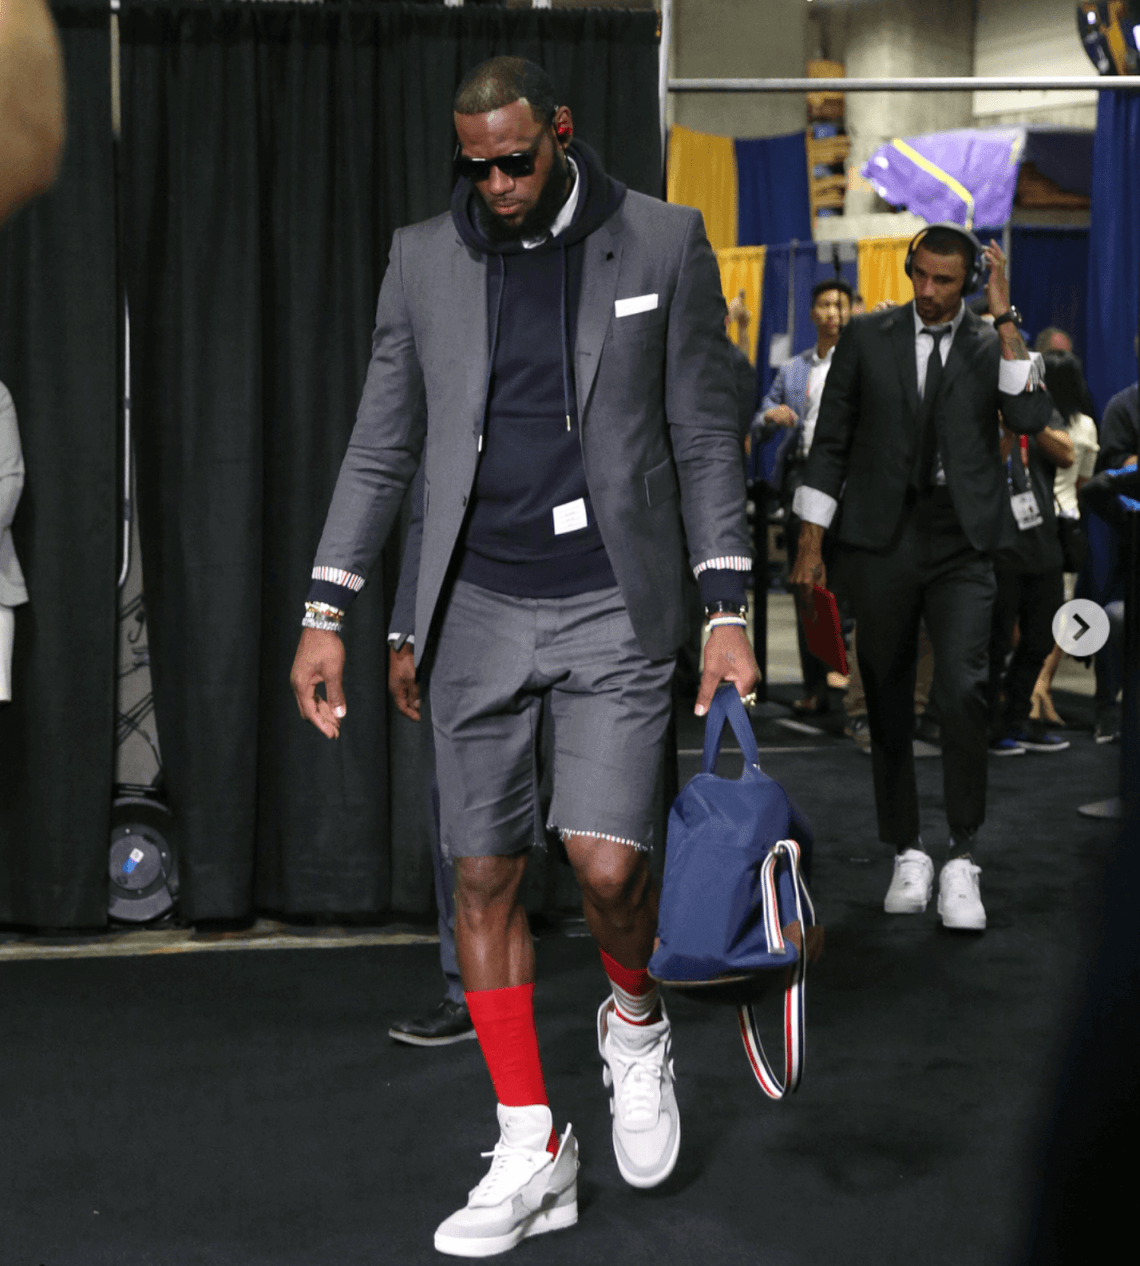 Lebron James in the John Elliot x Nike Air Force 1 High